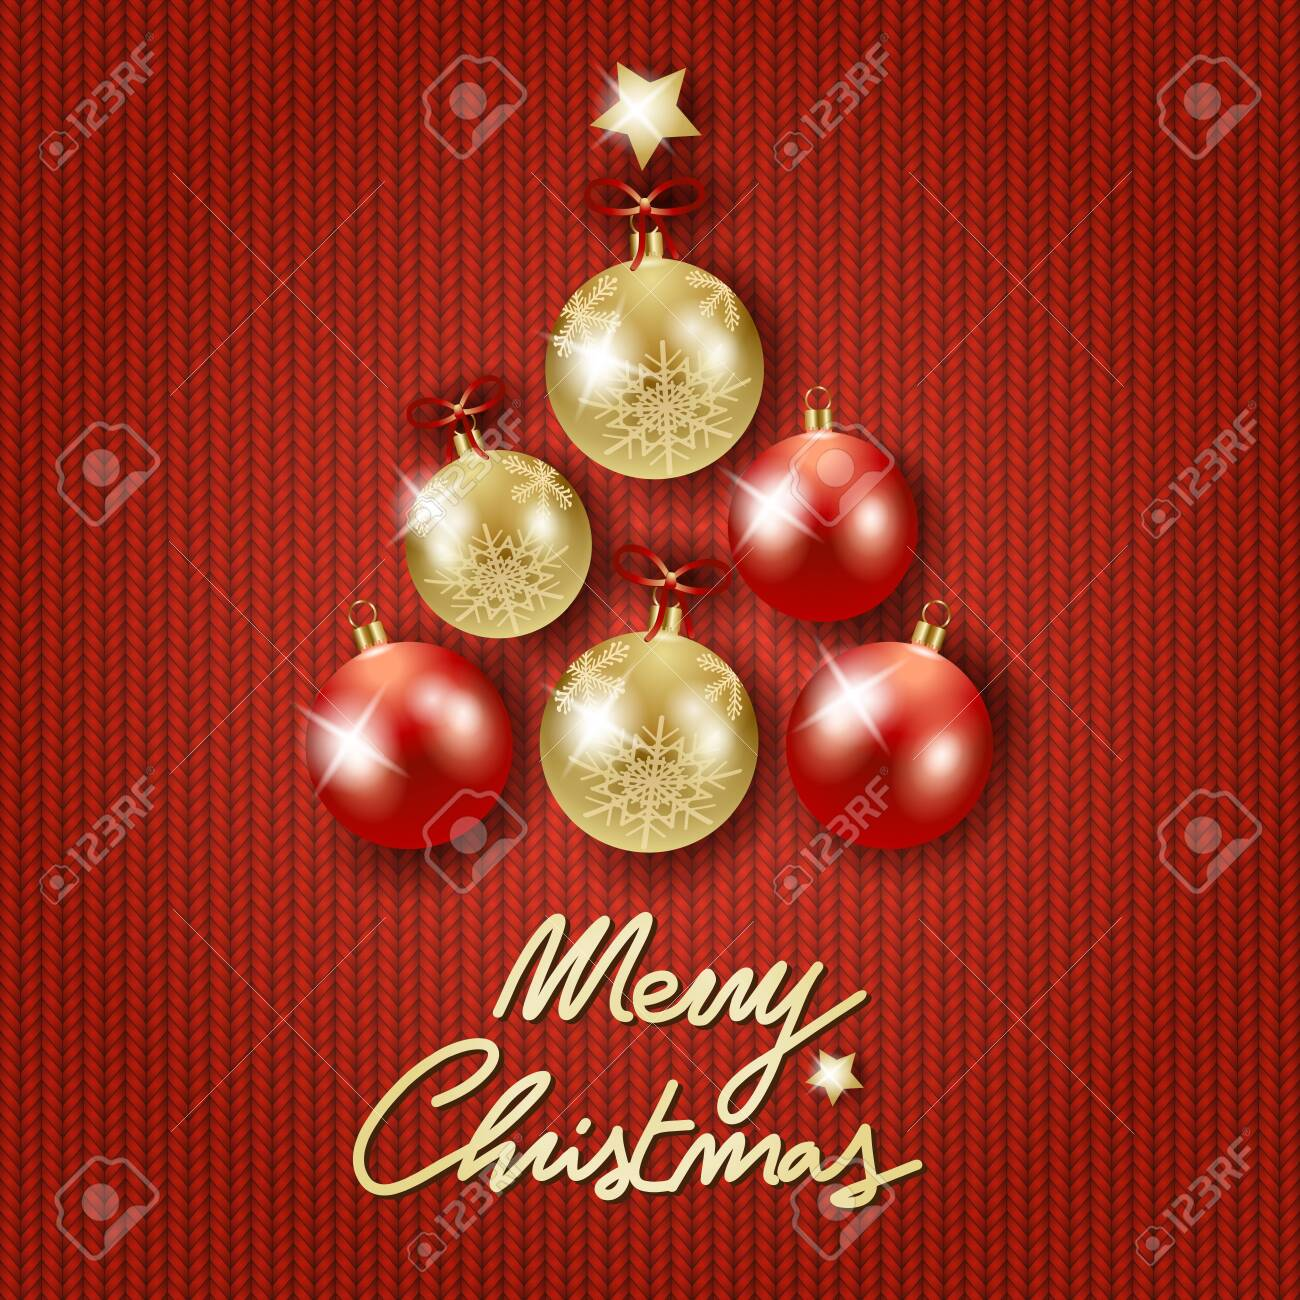 Christmas background with tree, baubles and text on red wool. Vector illustration - 134812010